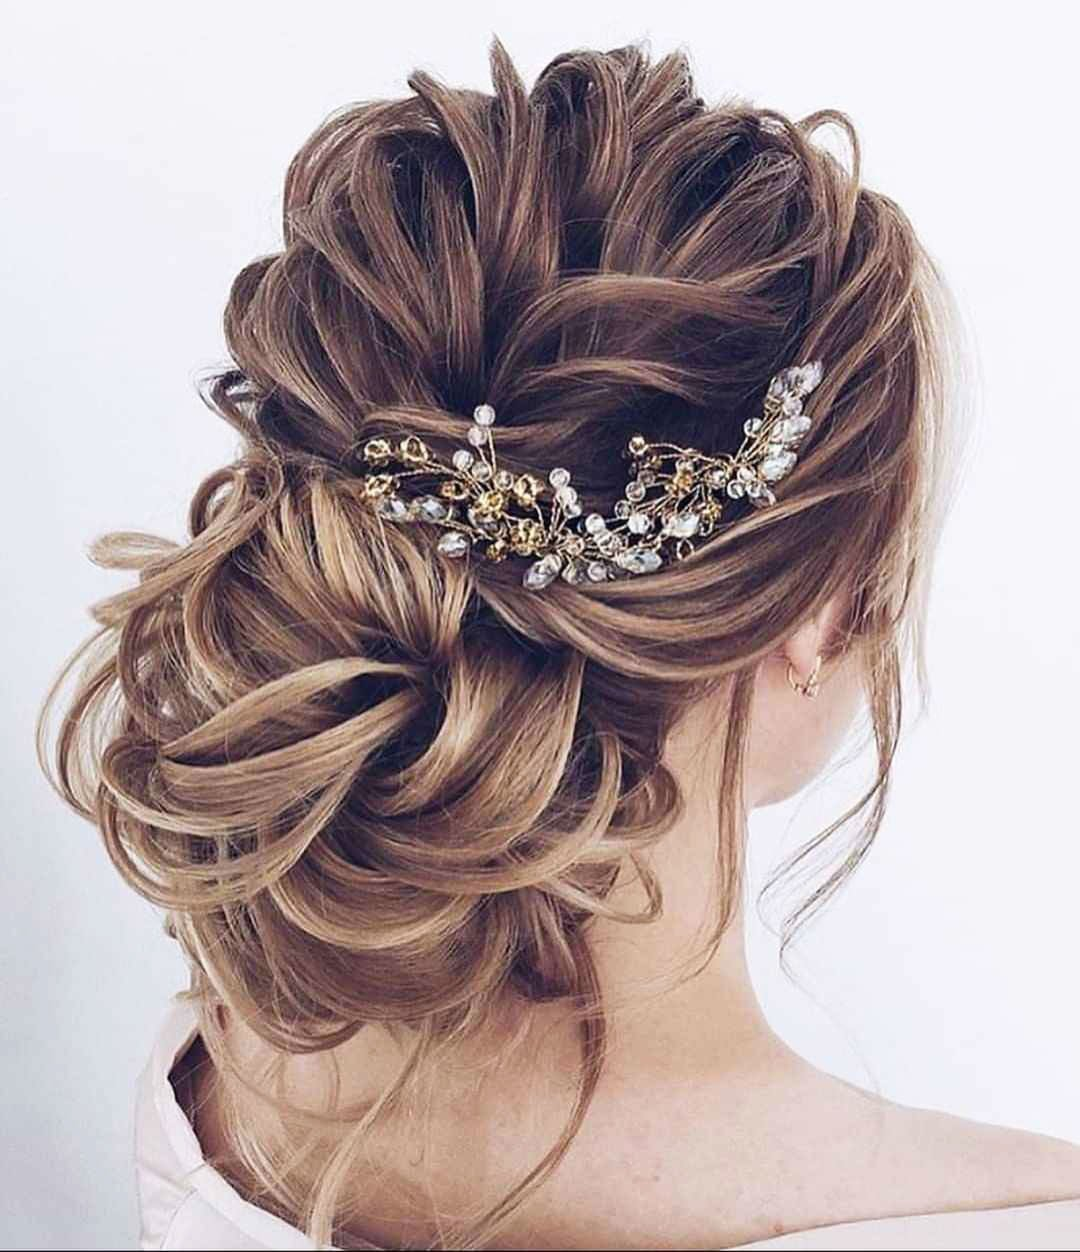 Hairstyles For Prom On Long Hair 2019-2020: Photo 2